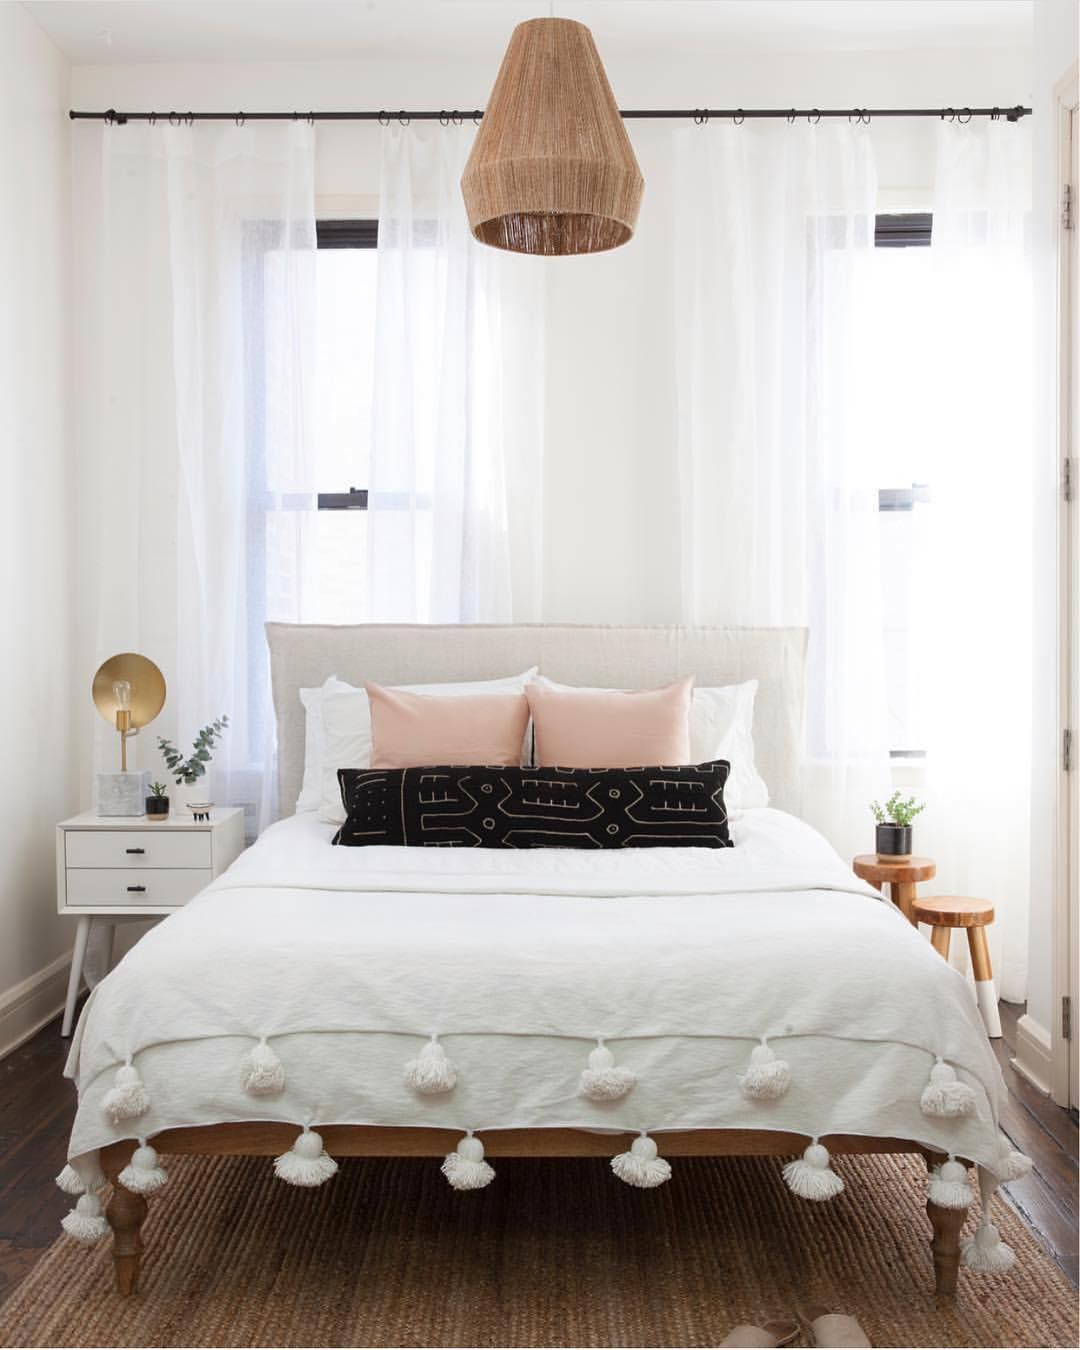 pin by melissa atkins on townhouse guest bedroom in 2018 pinterest rh pinterest com Townhouse Bedroom Tumblr Bedroom Townhouse for Rent